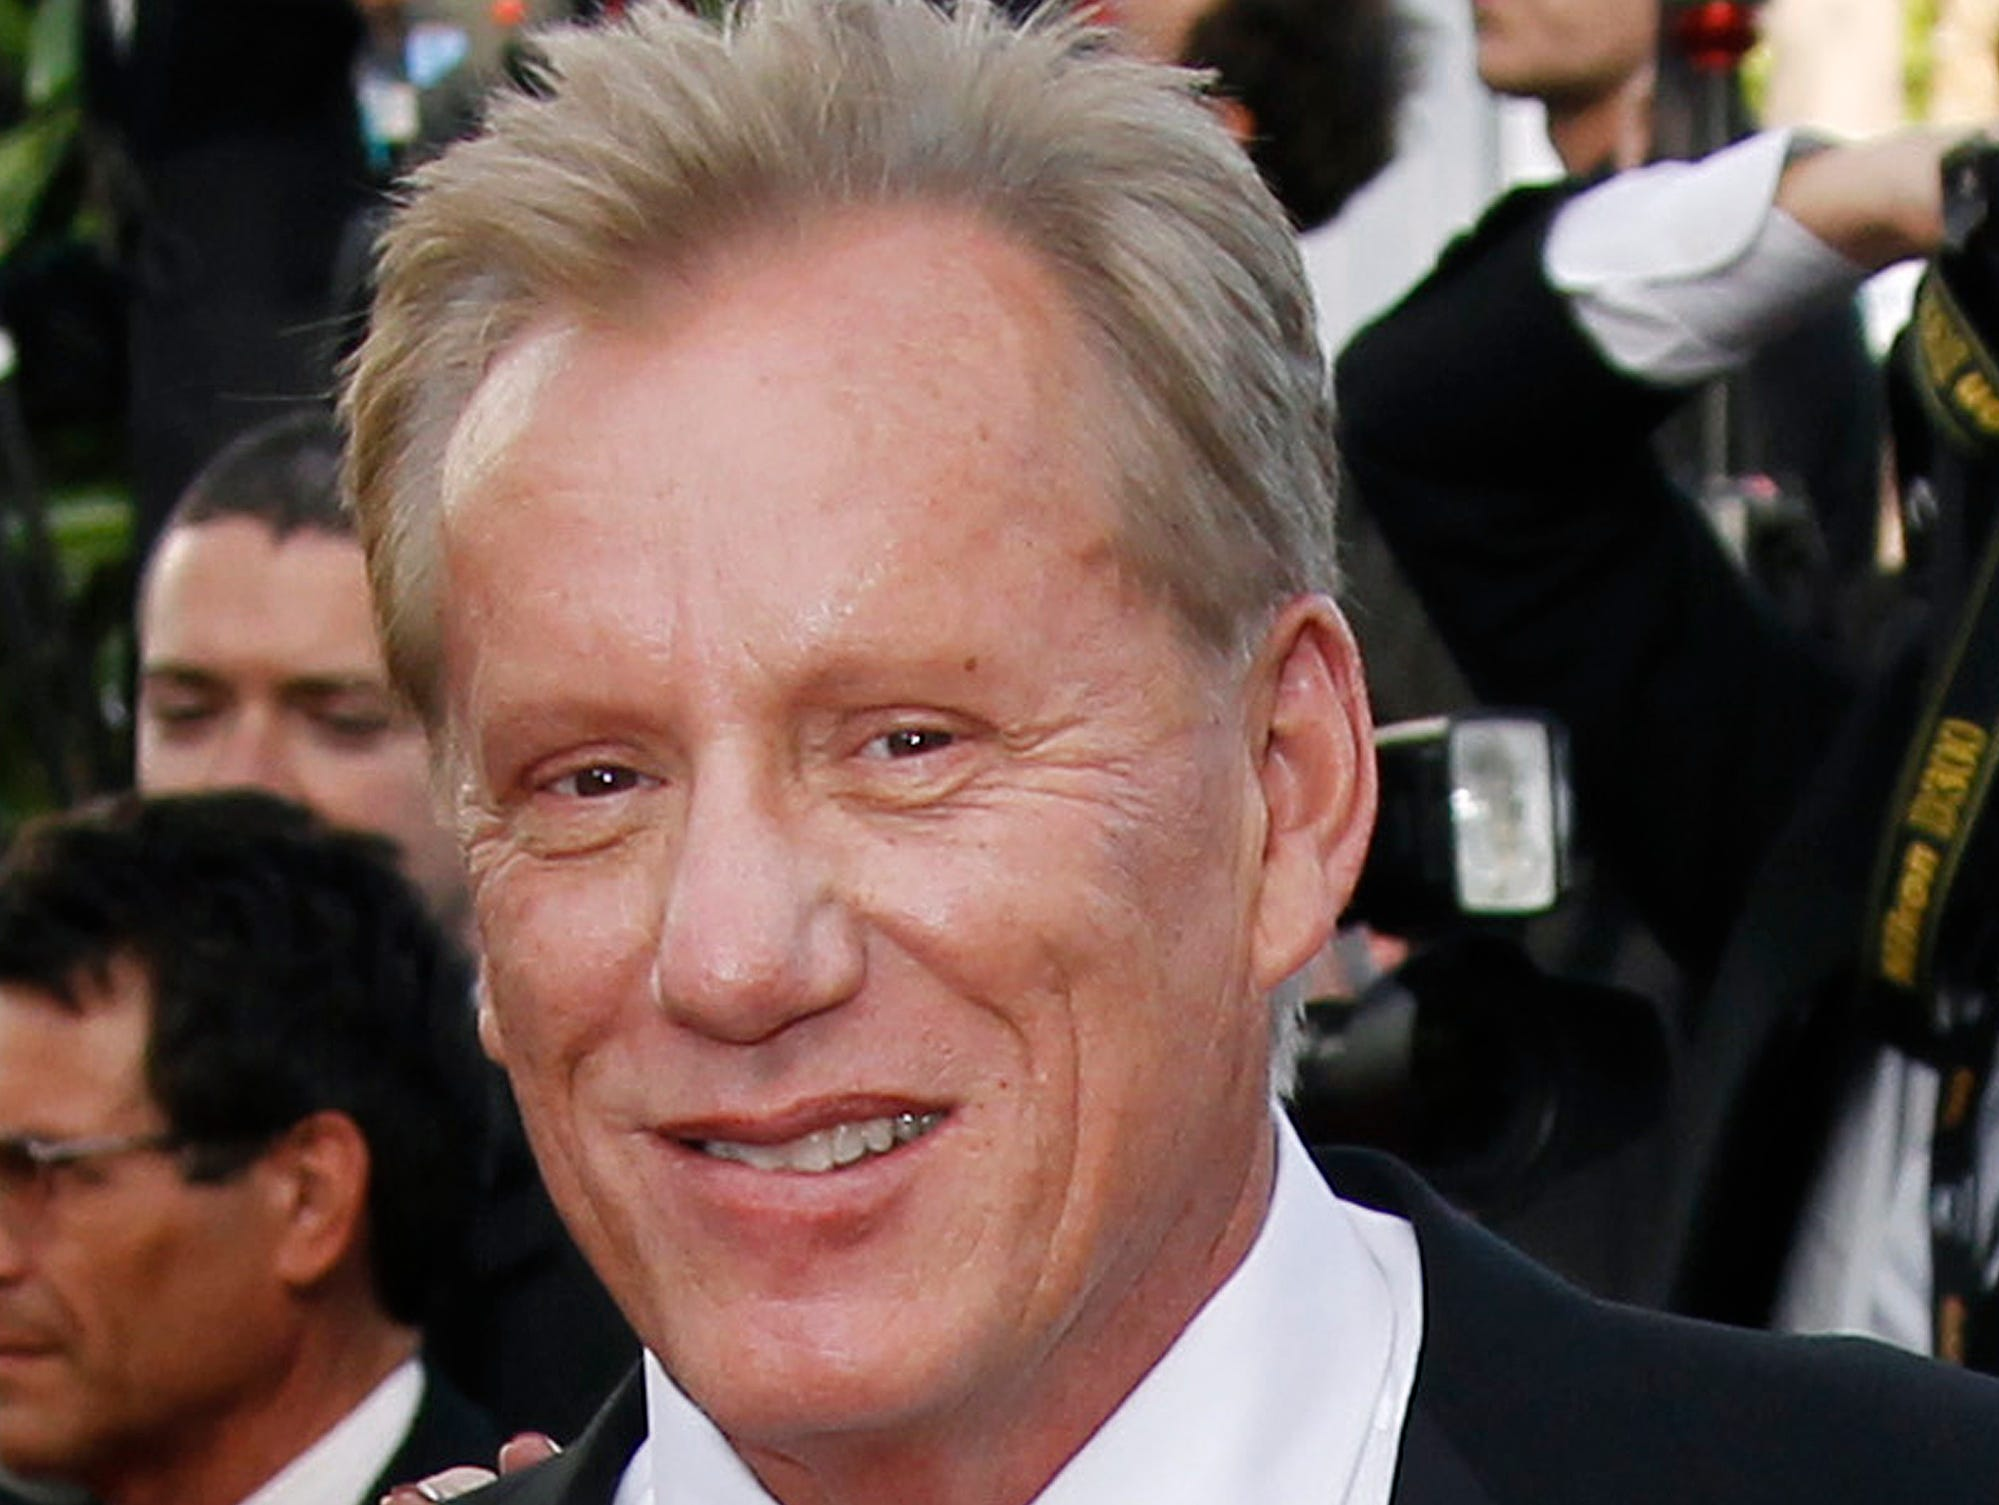 FILE - In this May 18, 2012 file photo, actor James Woods arrives for the screening of Once Upon a Time in America at the 65th international film festival, in Cannes, southern France. Woods said he is retiring from the entertainment industry. The news was included in a press release issued Friday, Oct. 6, 2017, by Woods' real estate agent offering Woods' Rhode Island lake house for sale.